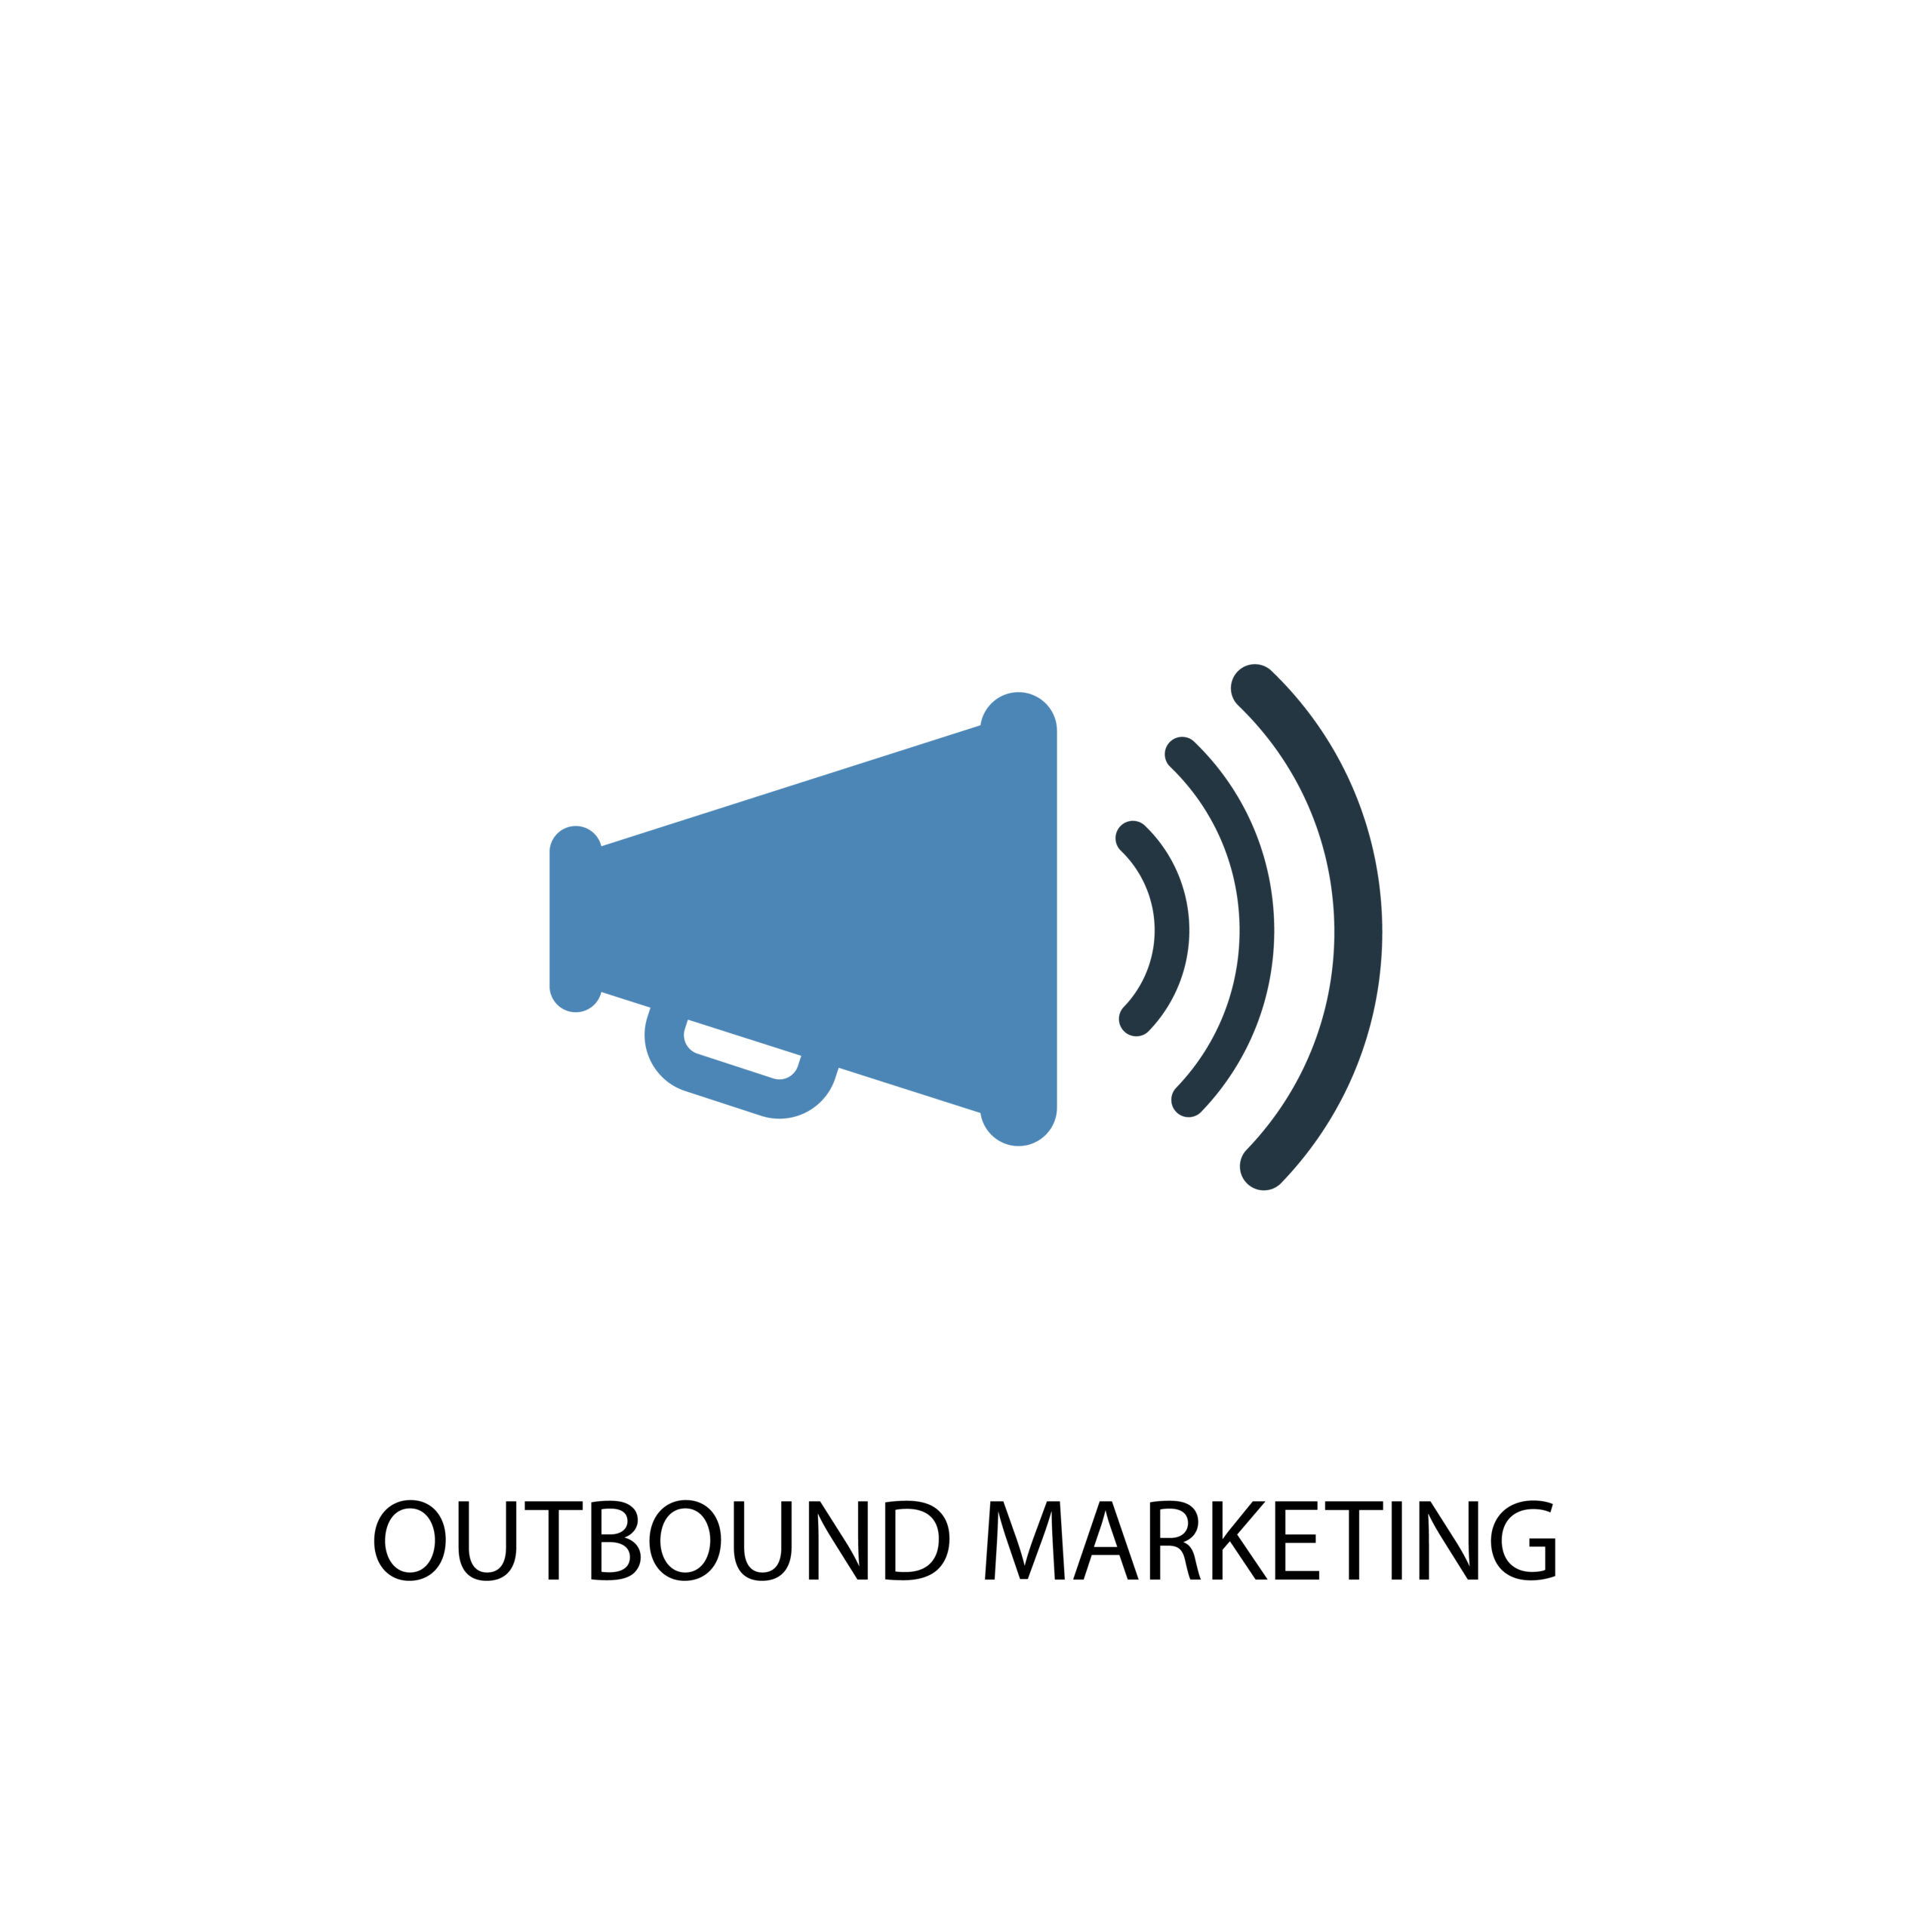 outbound marketing concept 2 colored icon. Simple blue element illustration. outbound marketing concept symbol design. Can be used for web and mobile UI/UX